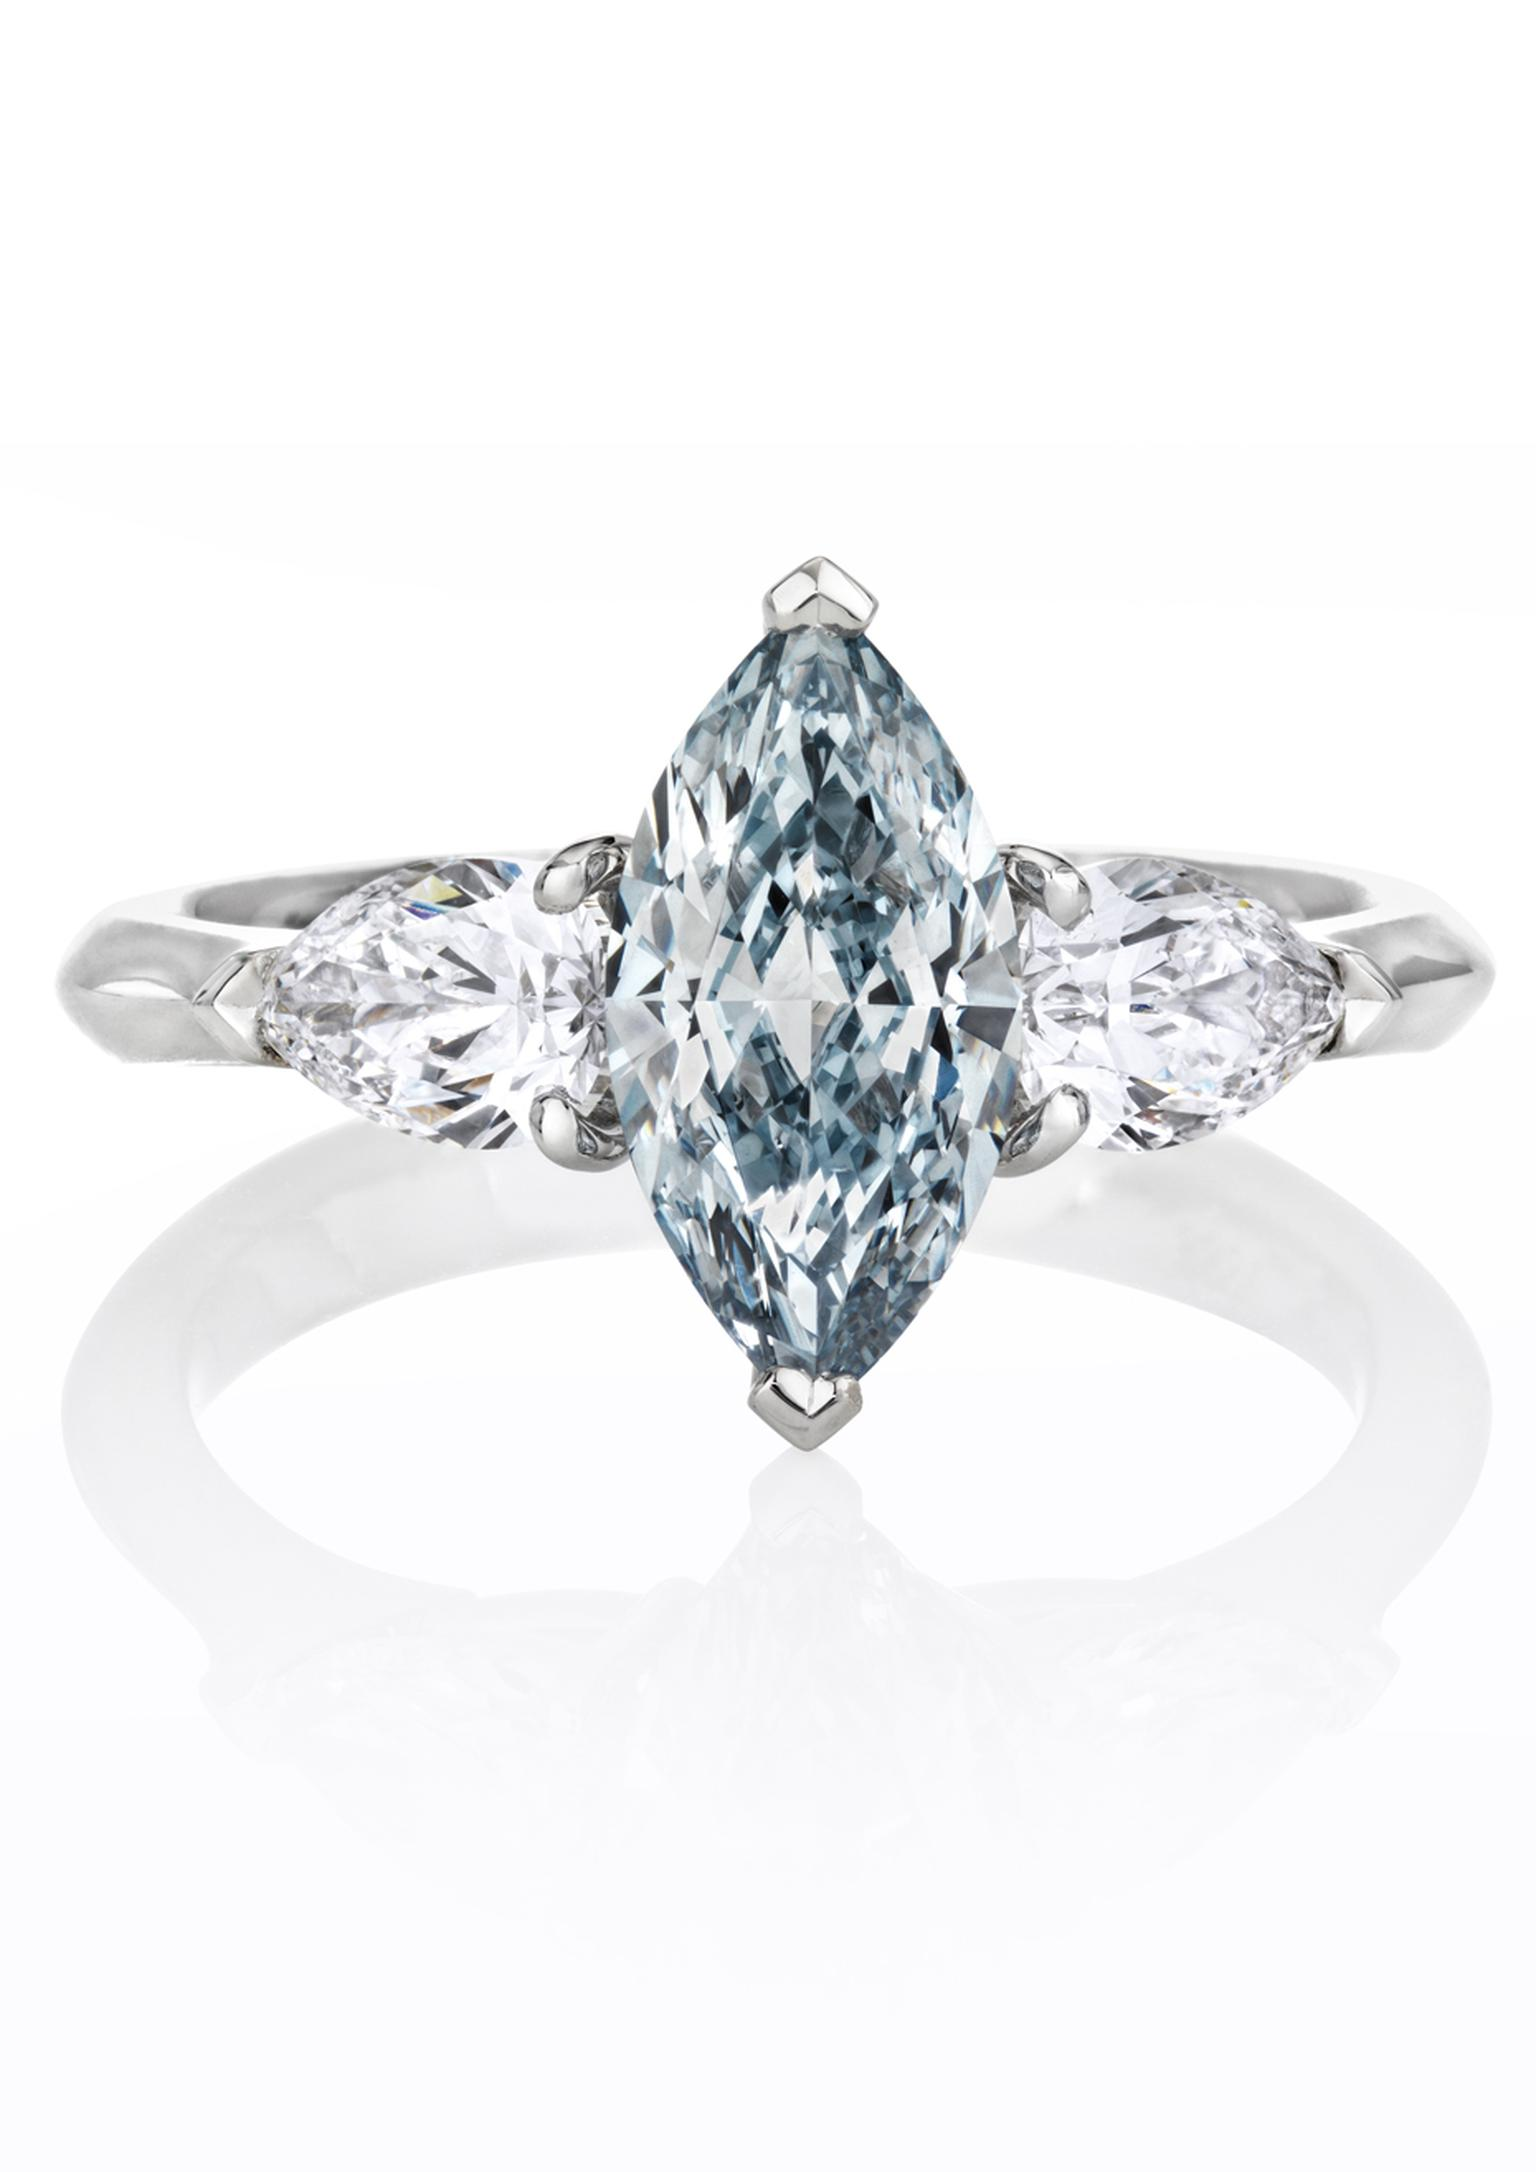 De Beers marquise-shaped blue diamond engagement ring flanked by white diamonds.